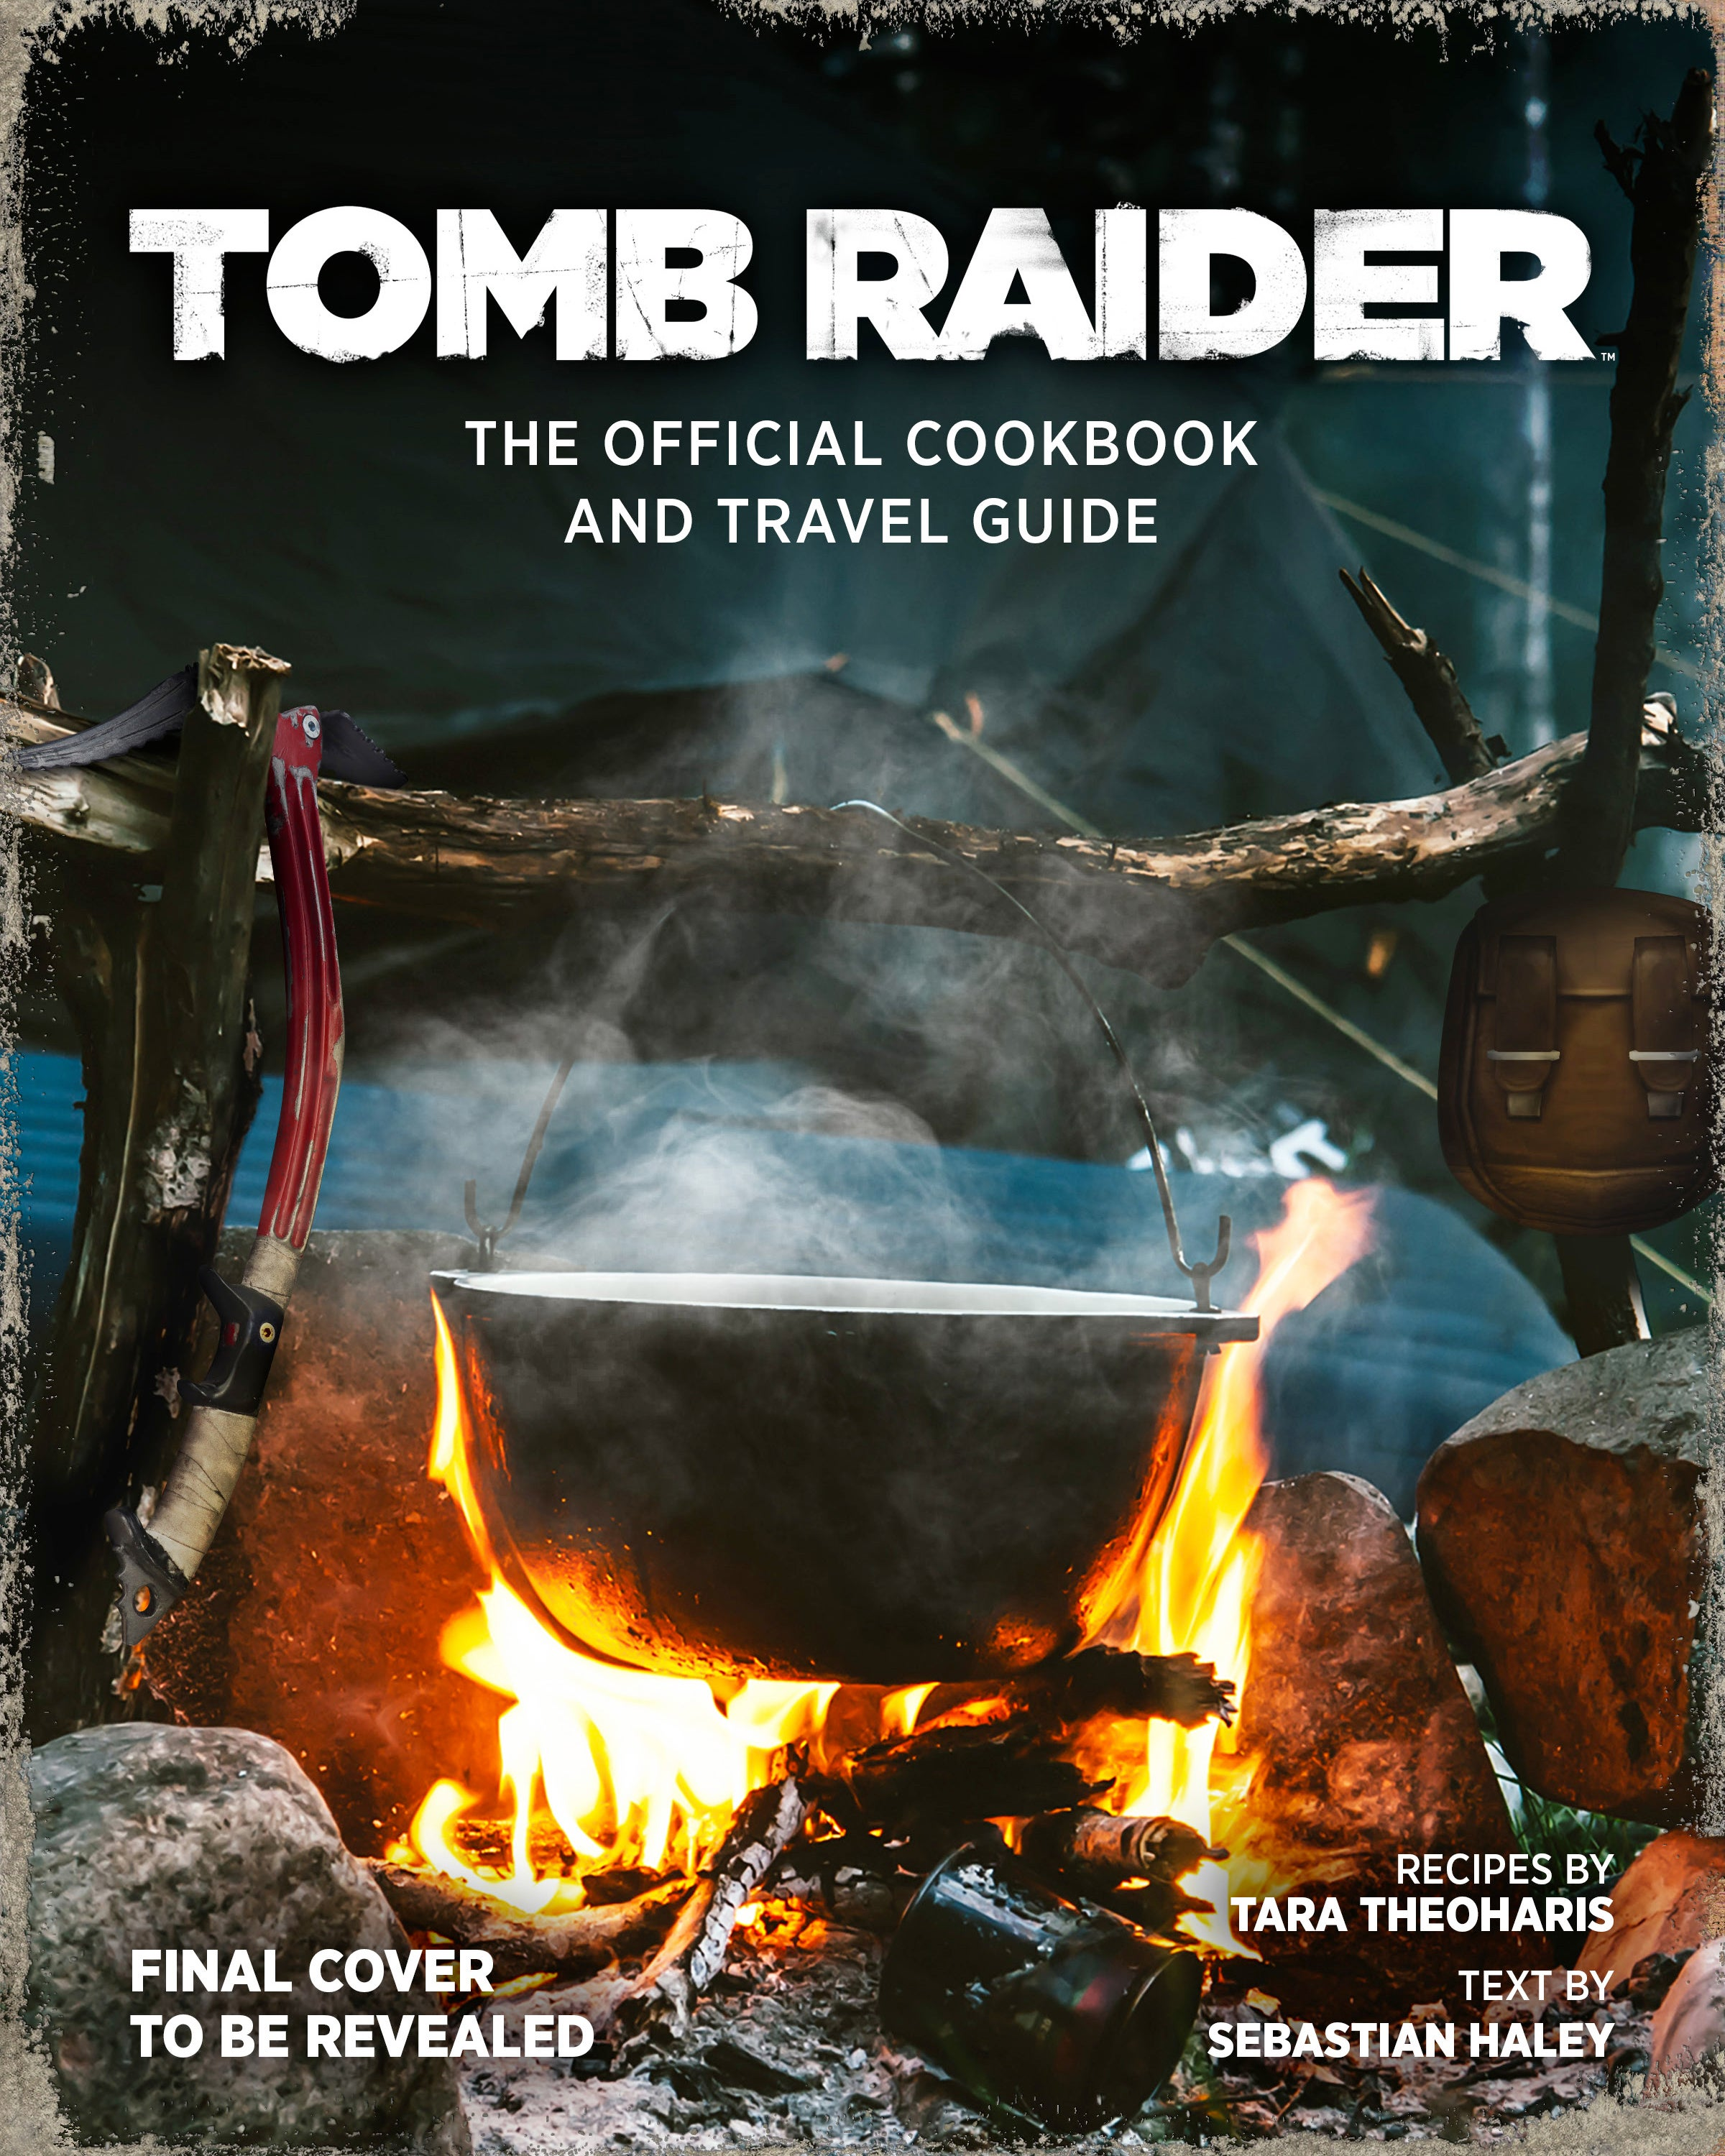 A graphic of the front cover of the upcoming Tomb Raider cookbook and travel guide